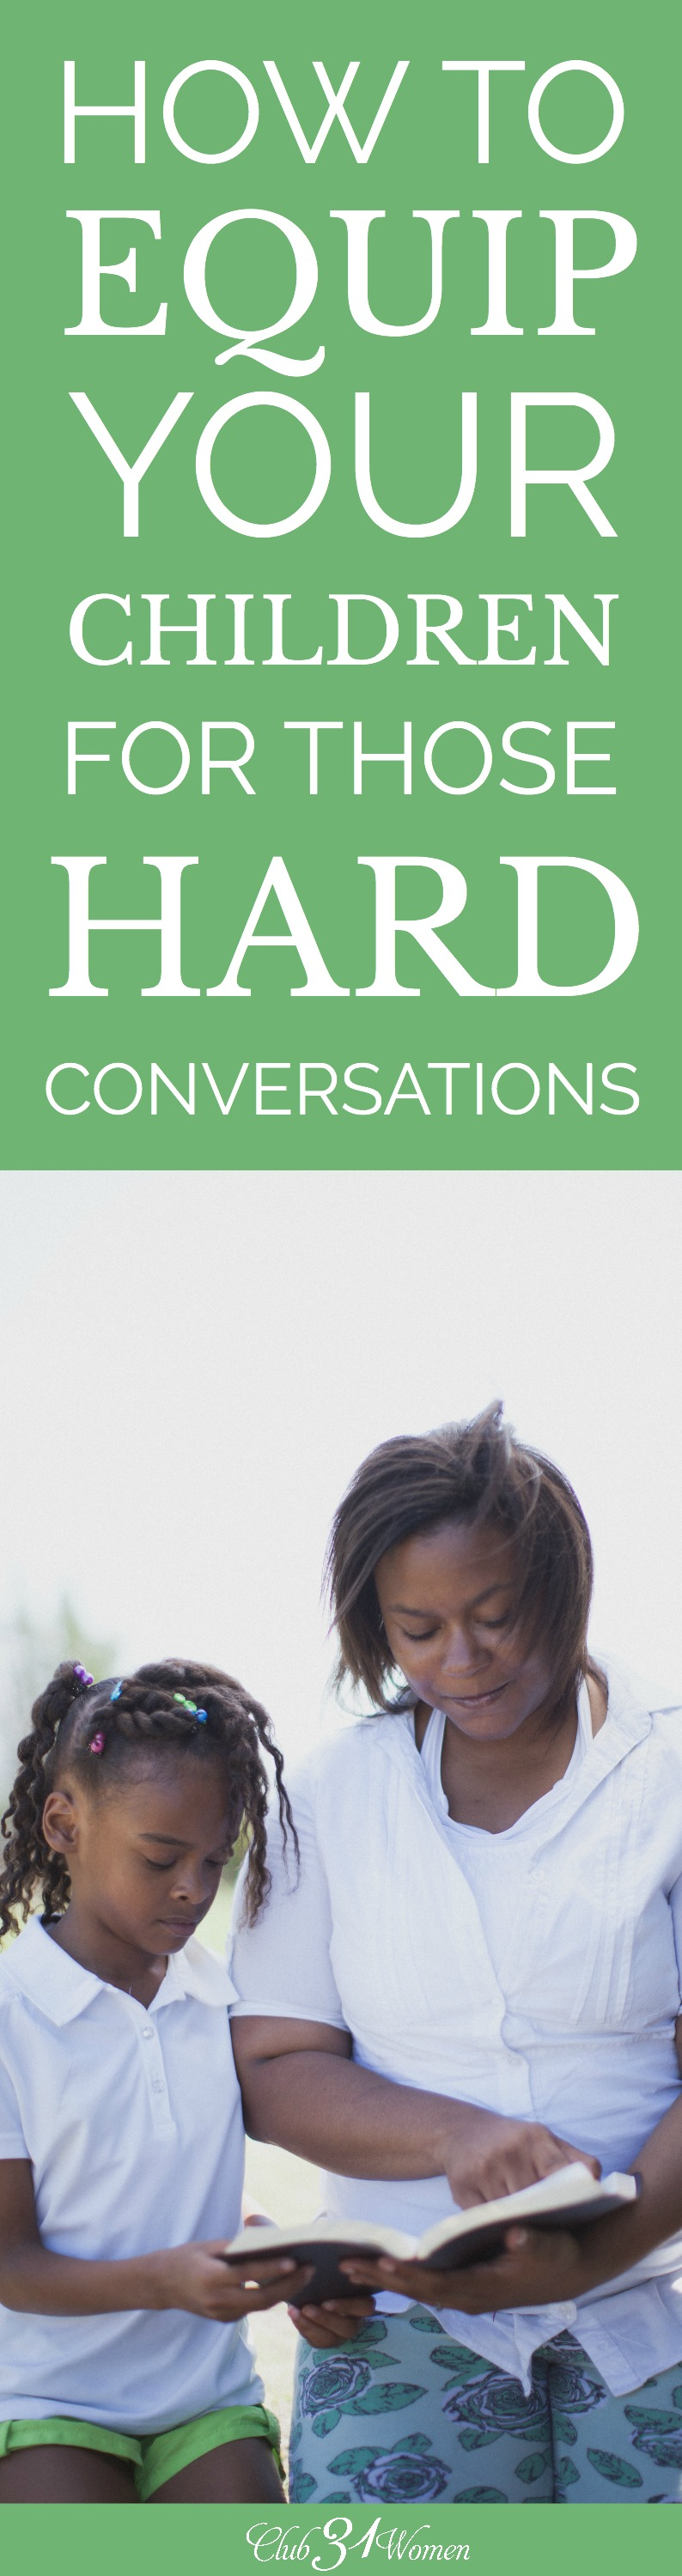 Do you tend to avoid discussing hard topics? Here are a few tips to help you approach the hard and ugly conversations with your children. via @Club31Women